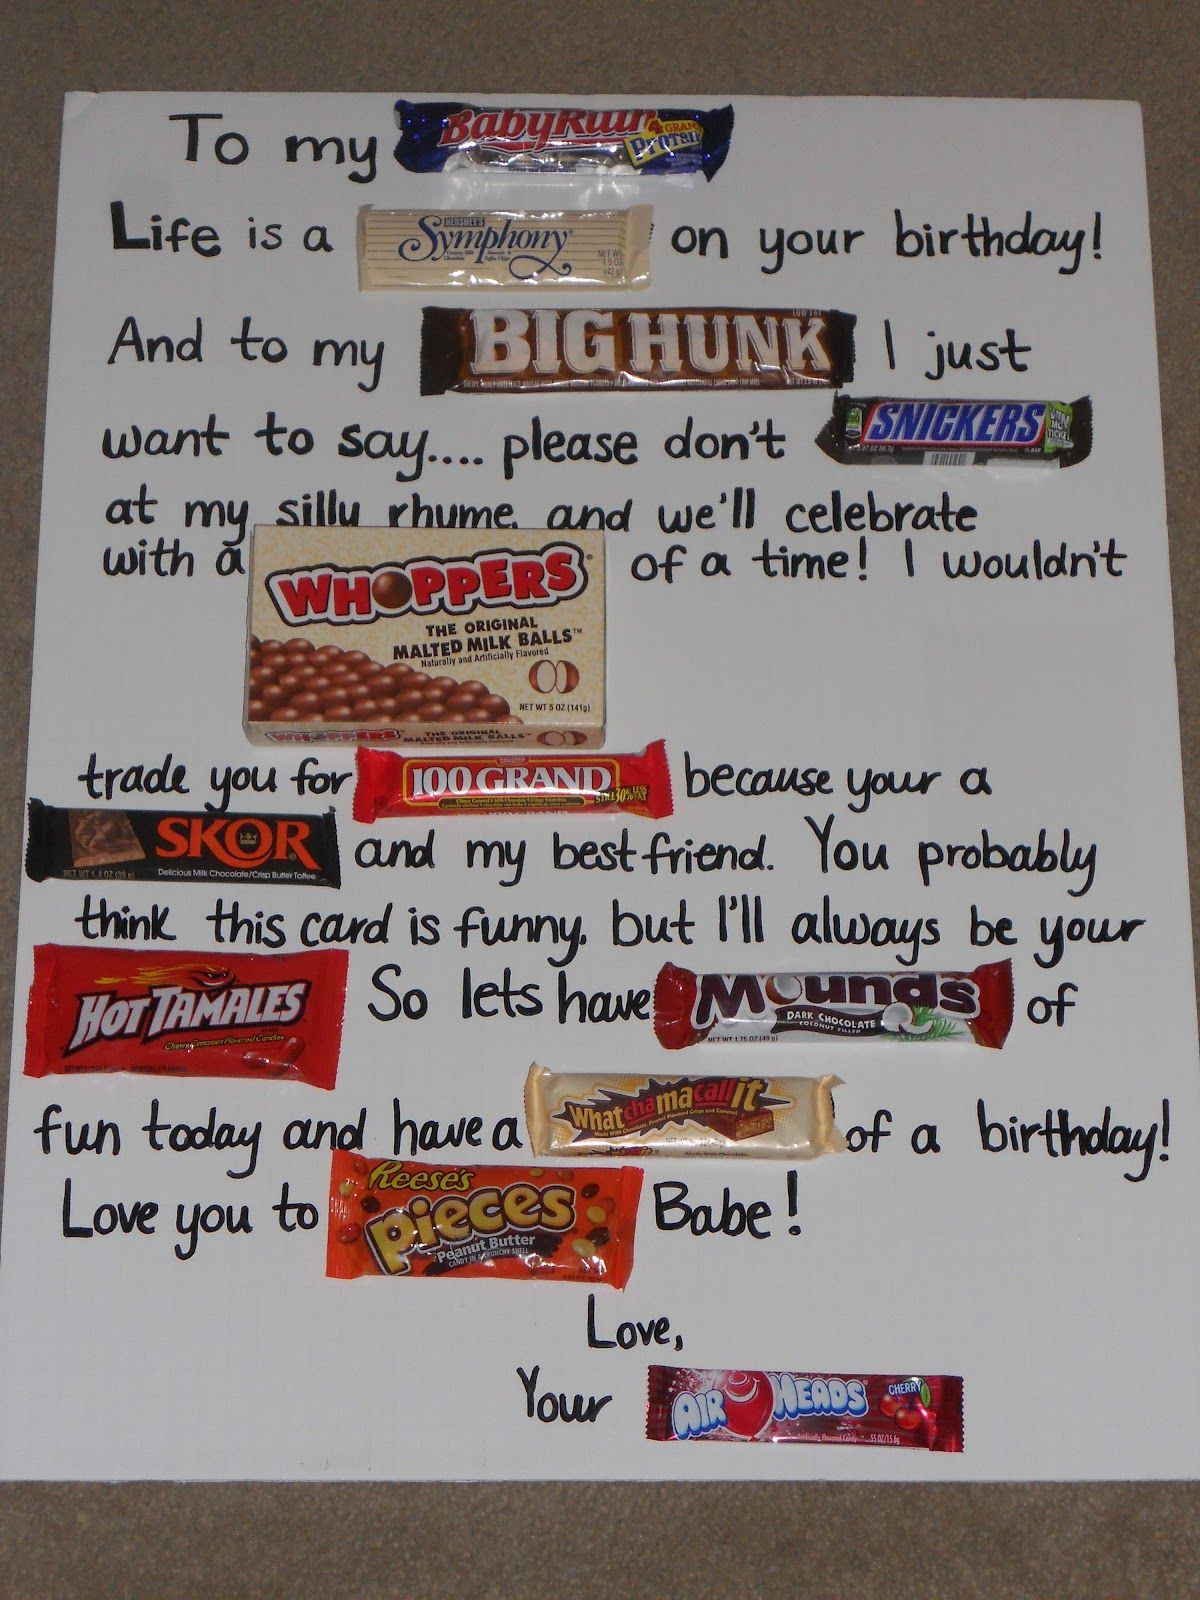 Candy bar poem birthday cardposter for someones birthday best candy bar poem birthday cardposter for someones birthday best for at least 40 bookmarktalkfo